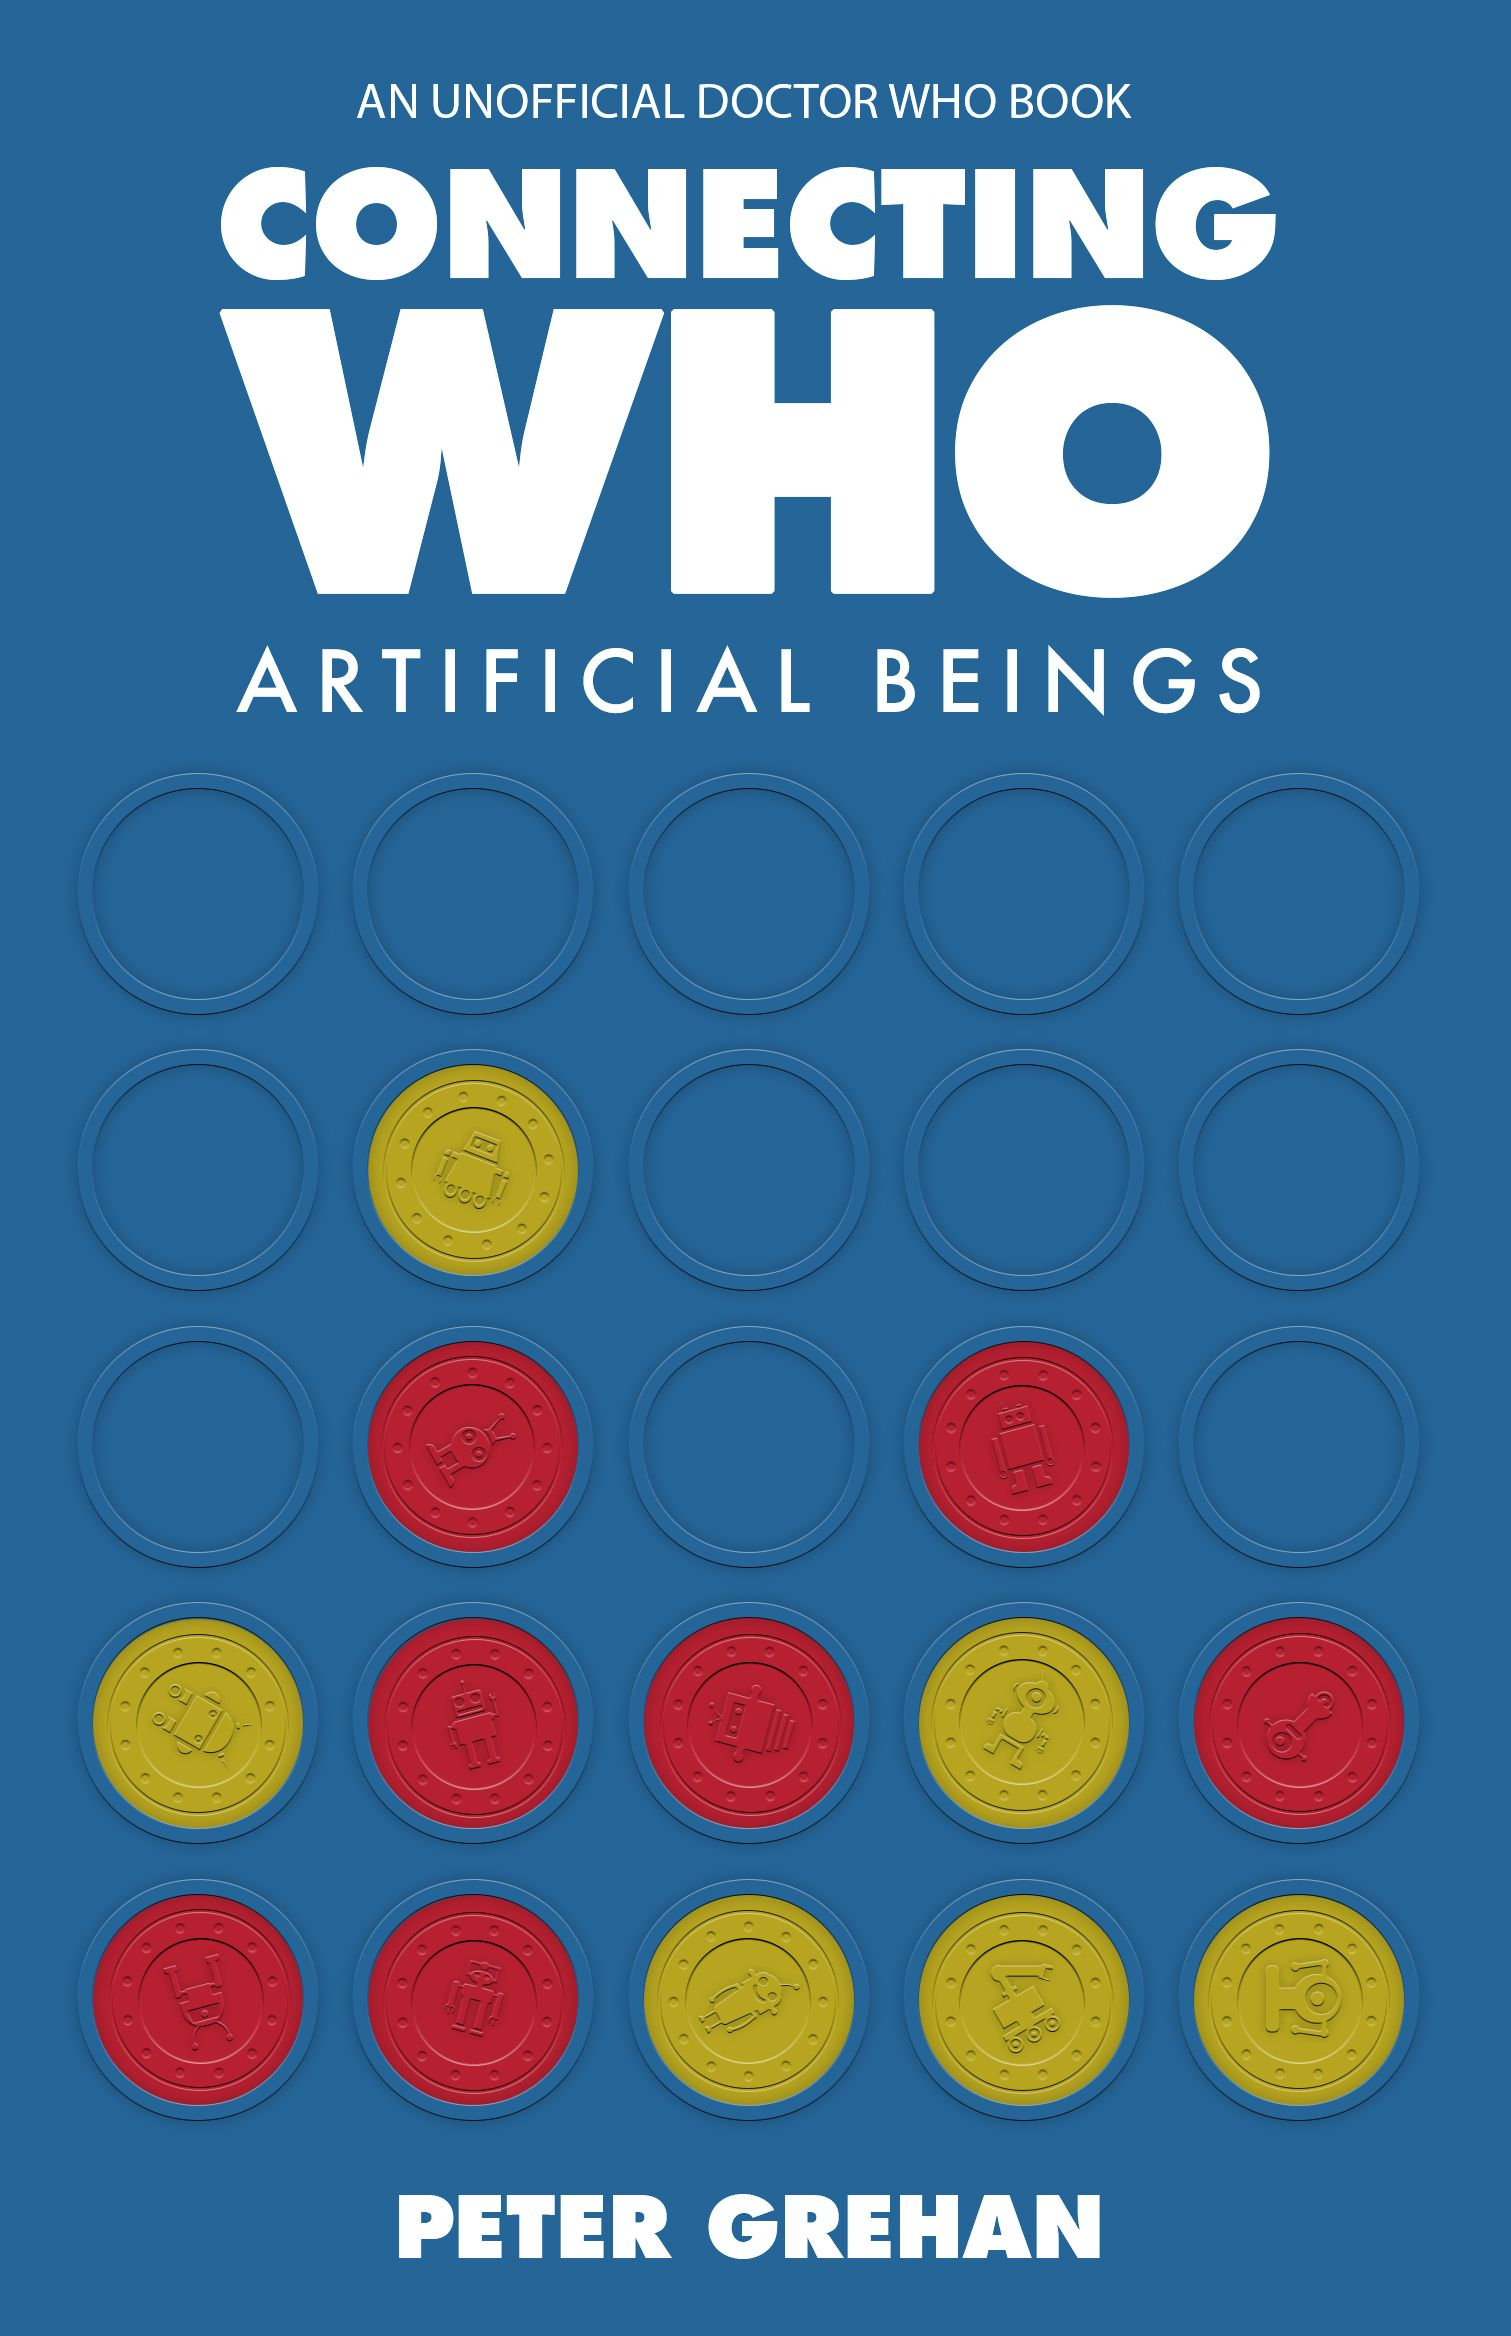 Connecting Who - Artificial Beings (Credit: Candy Jar Books)